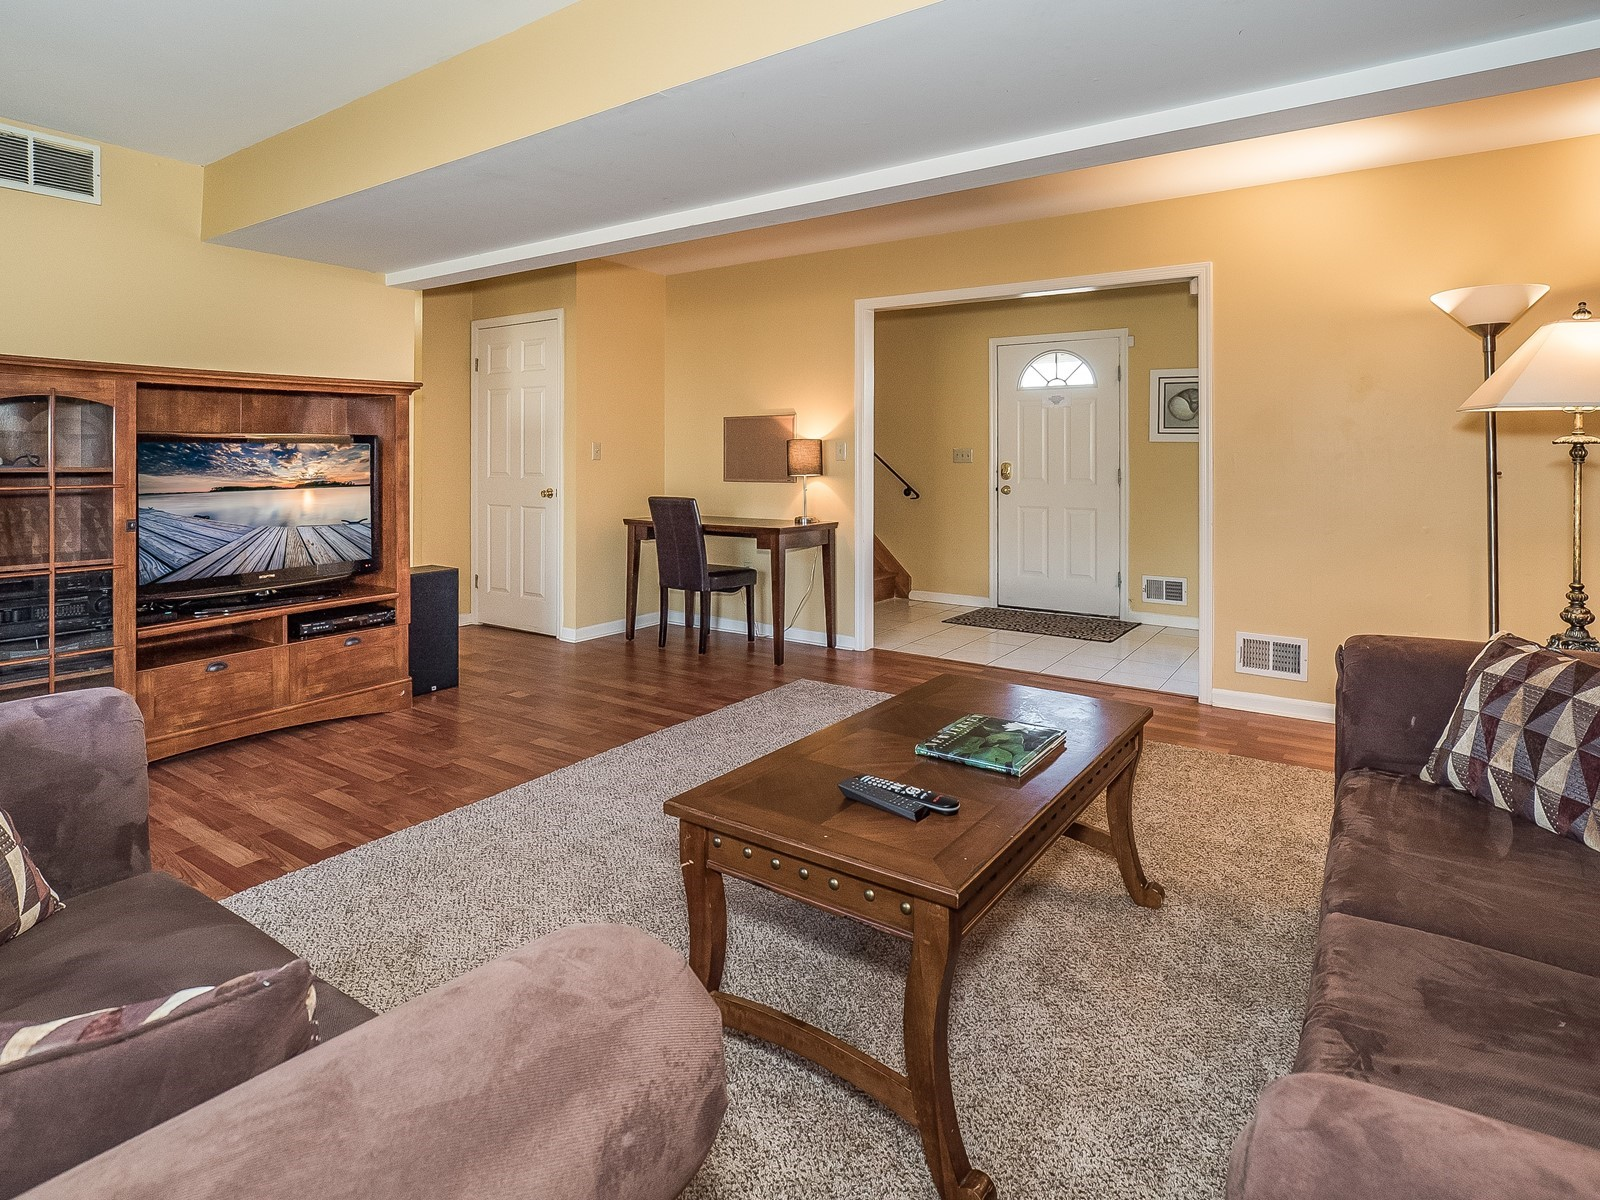 Woodbridge 29 Temporary Housing downstairs living room with large tv and view into entrance